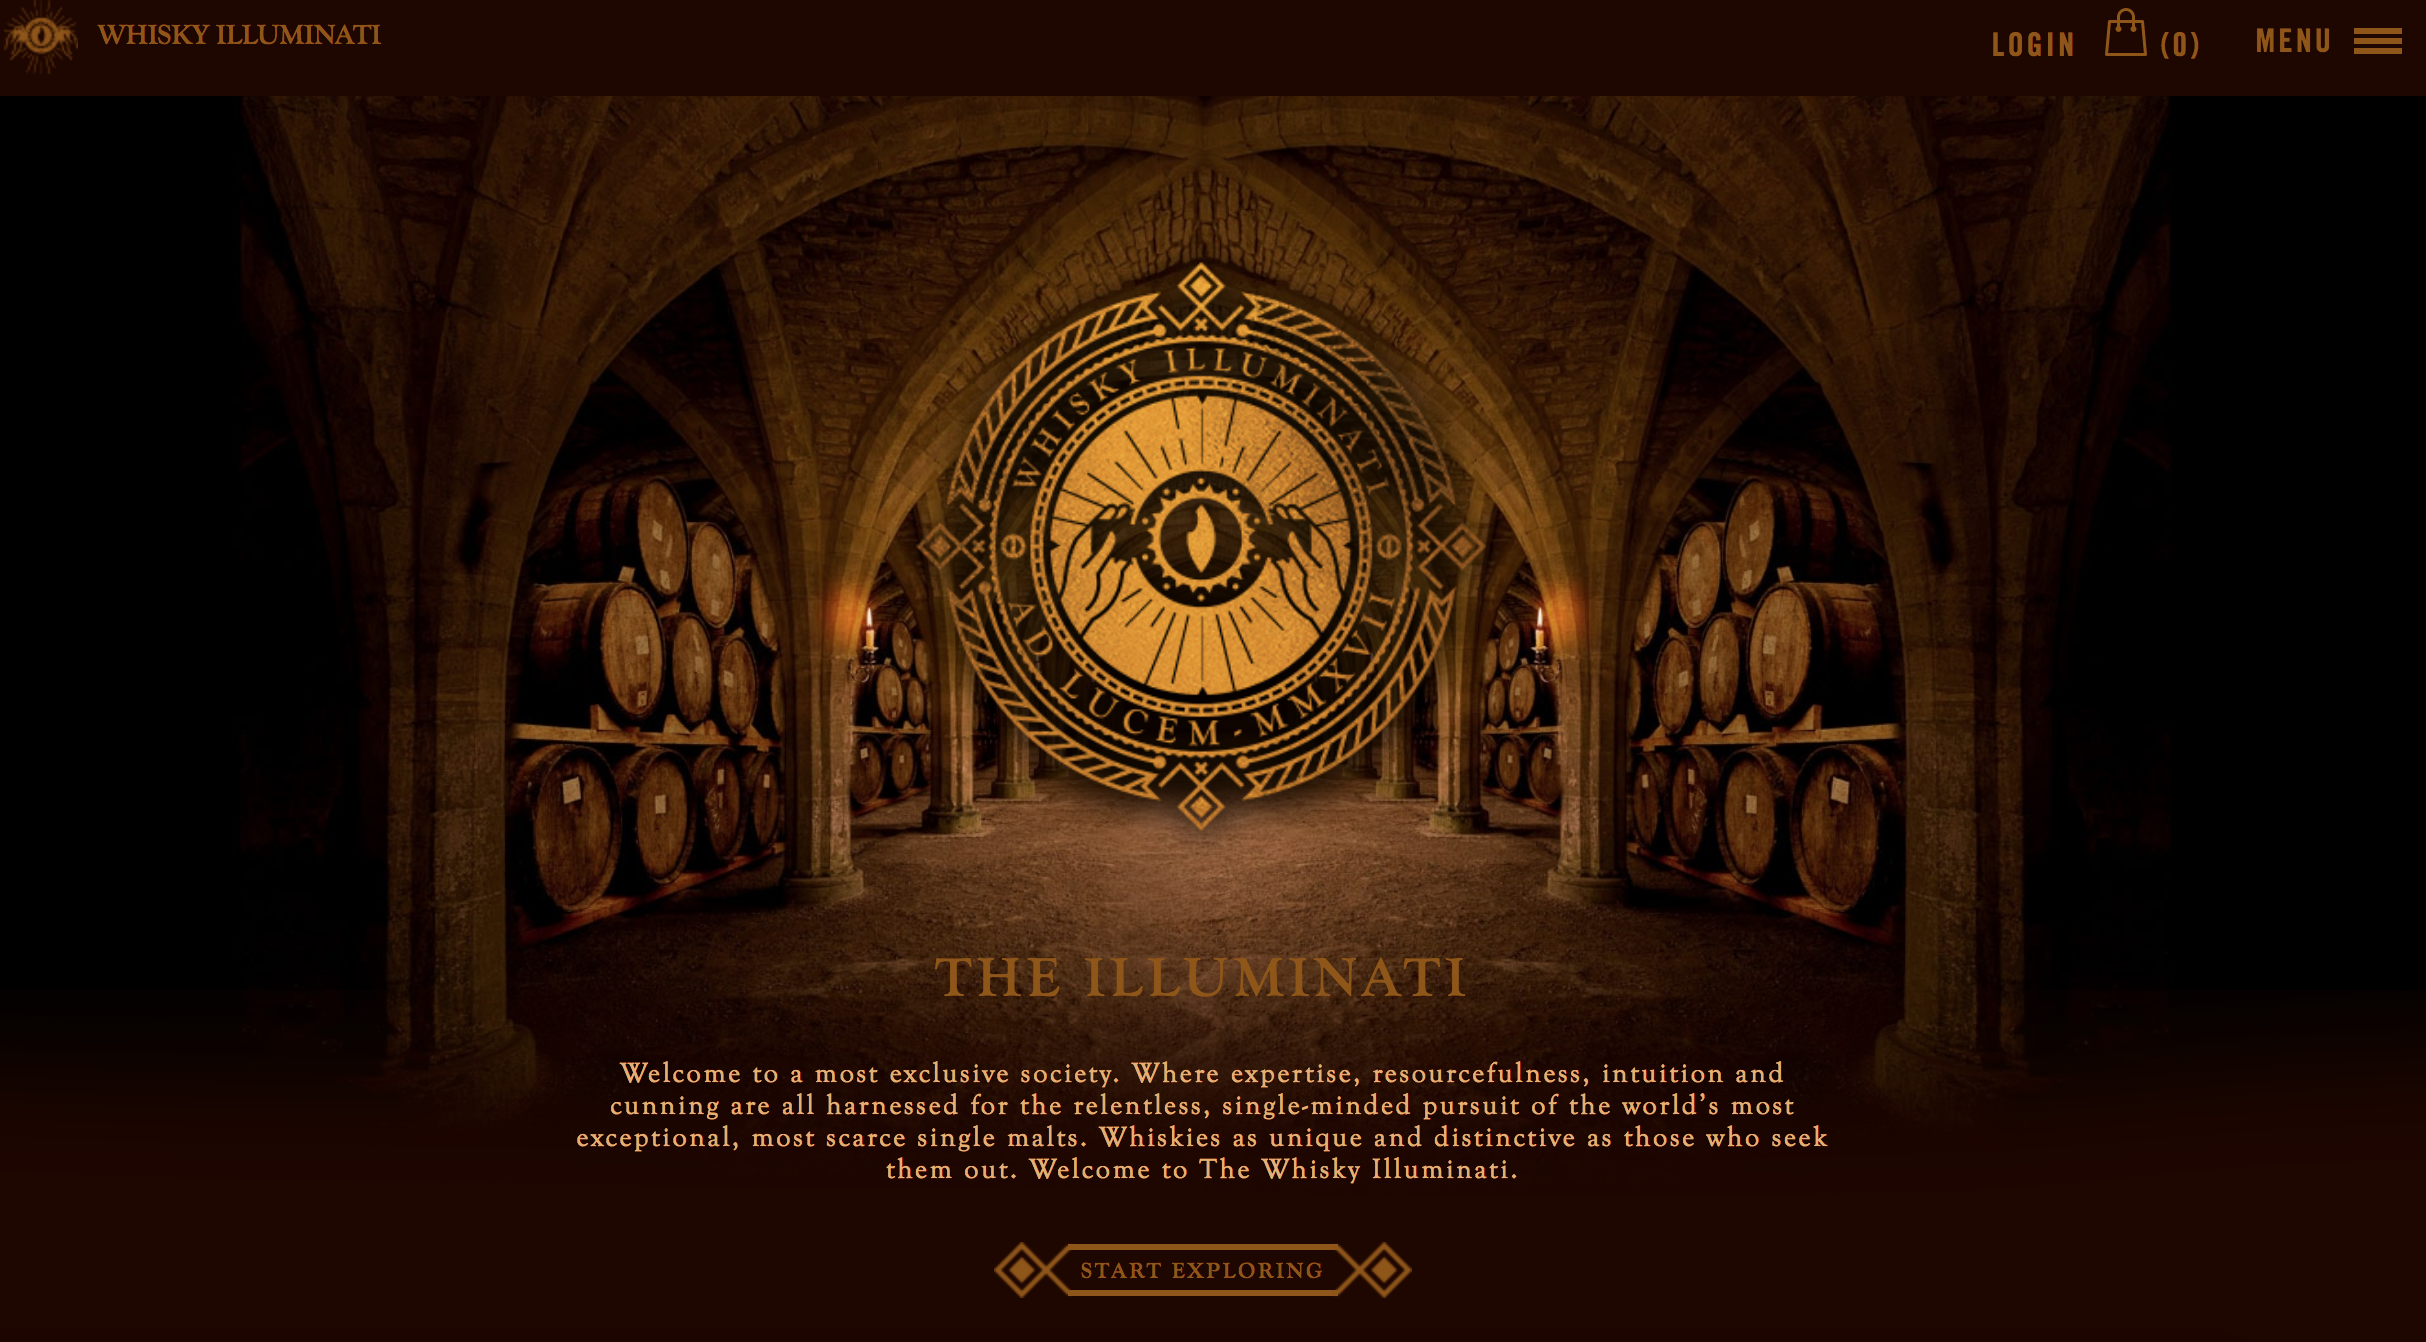 The Whisky Illuminati